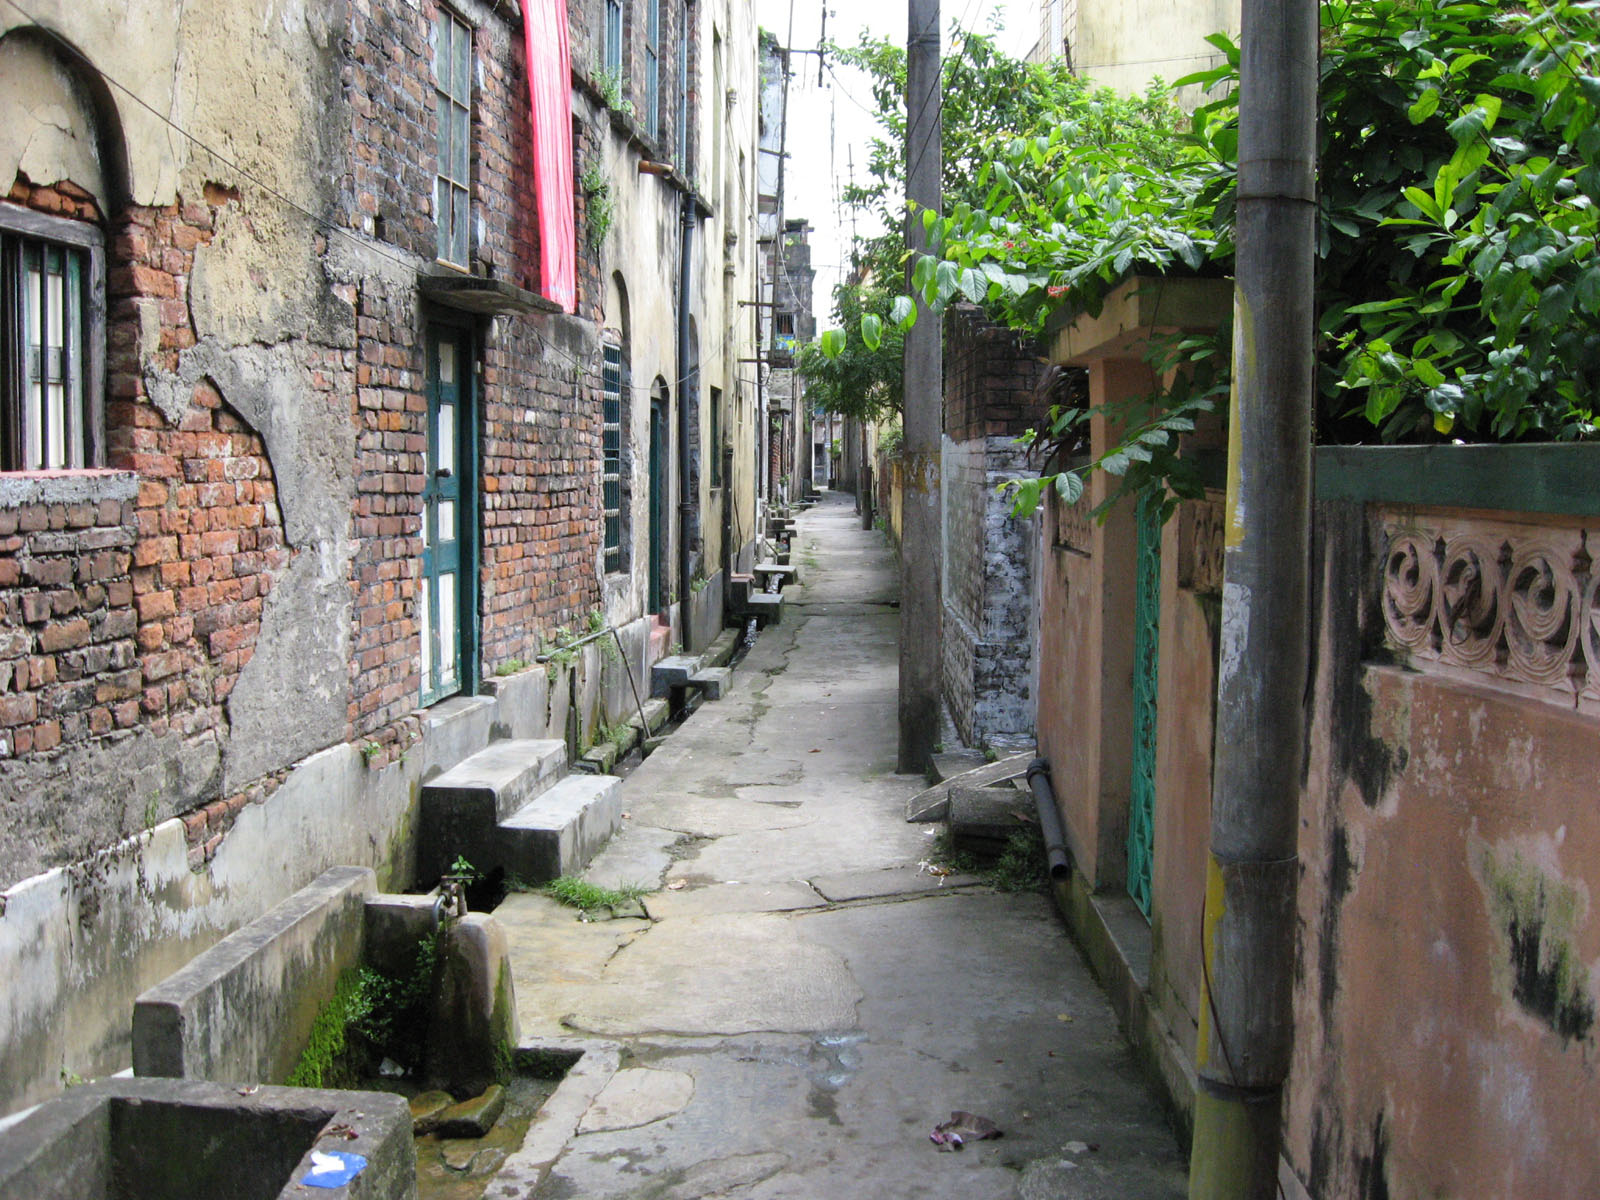 File:Naihati lane.JPG - Wikimedia Commons